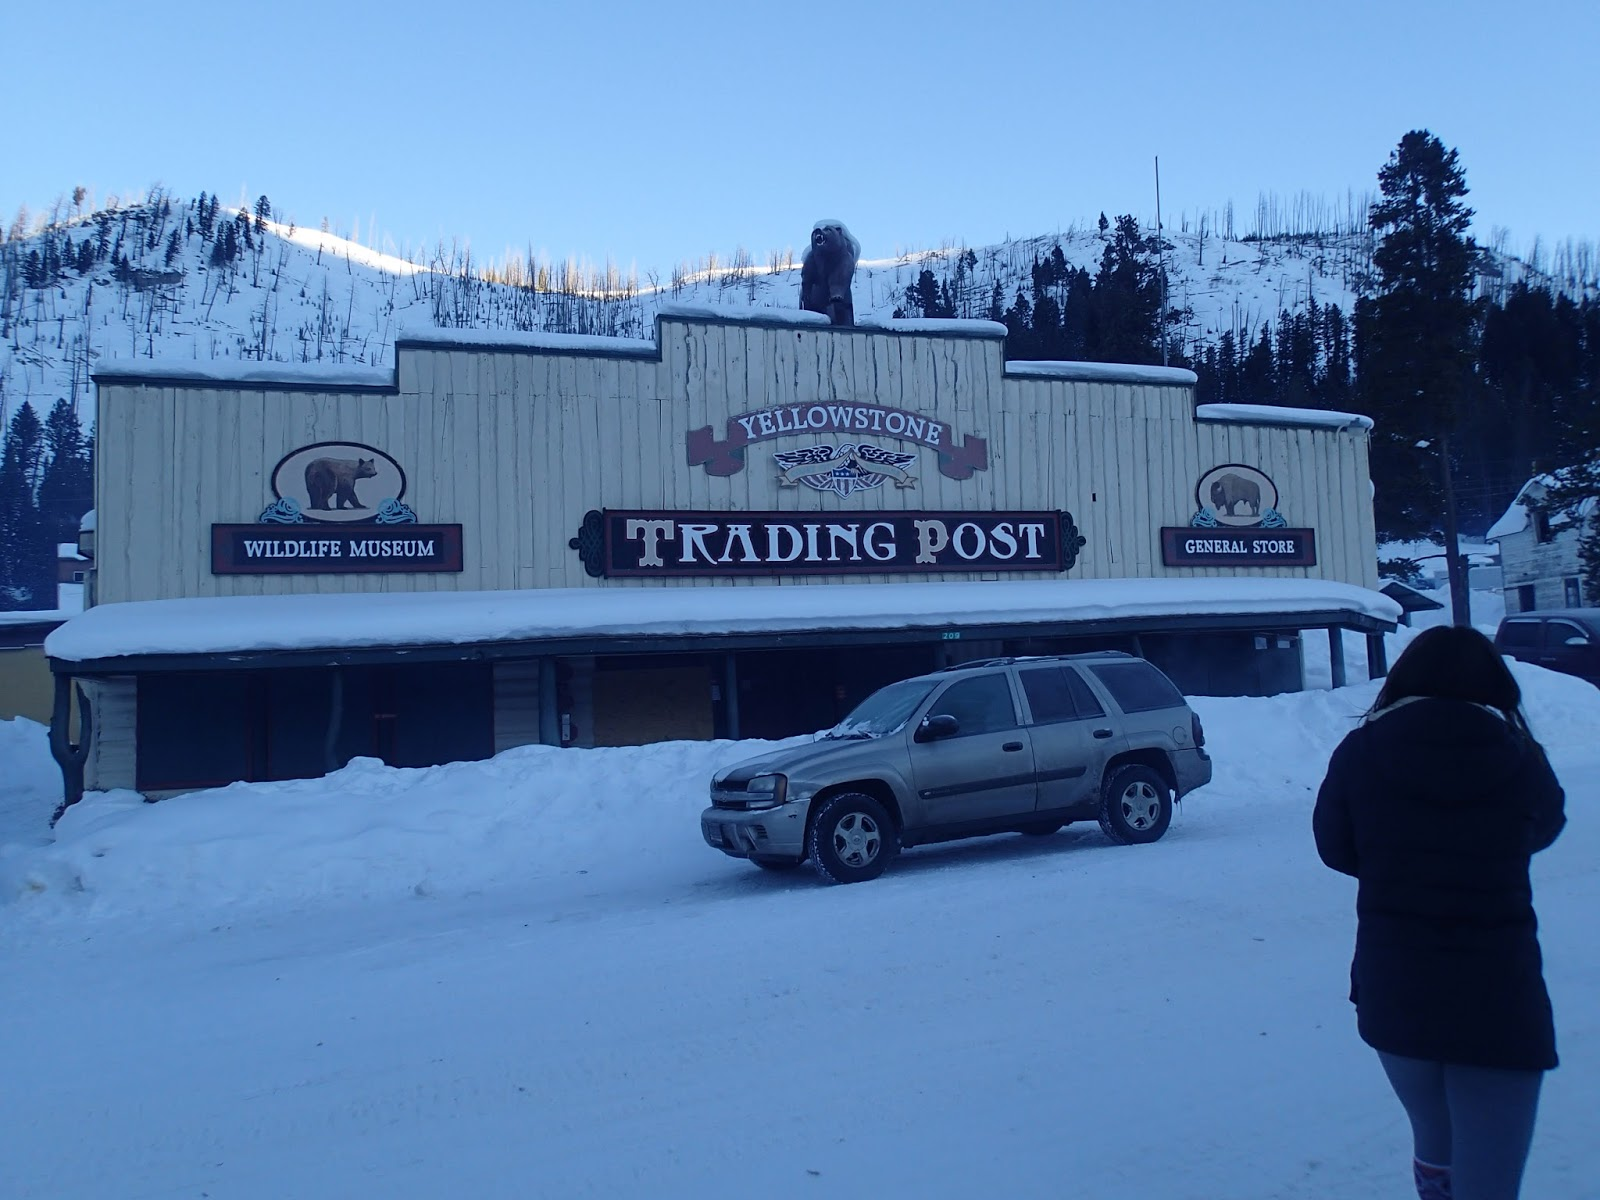 Yellowstone Trading Post Cooke City, Montana